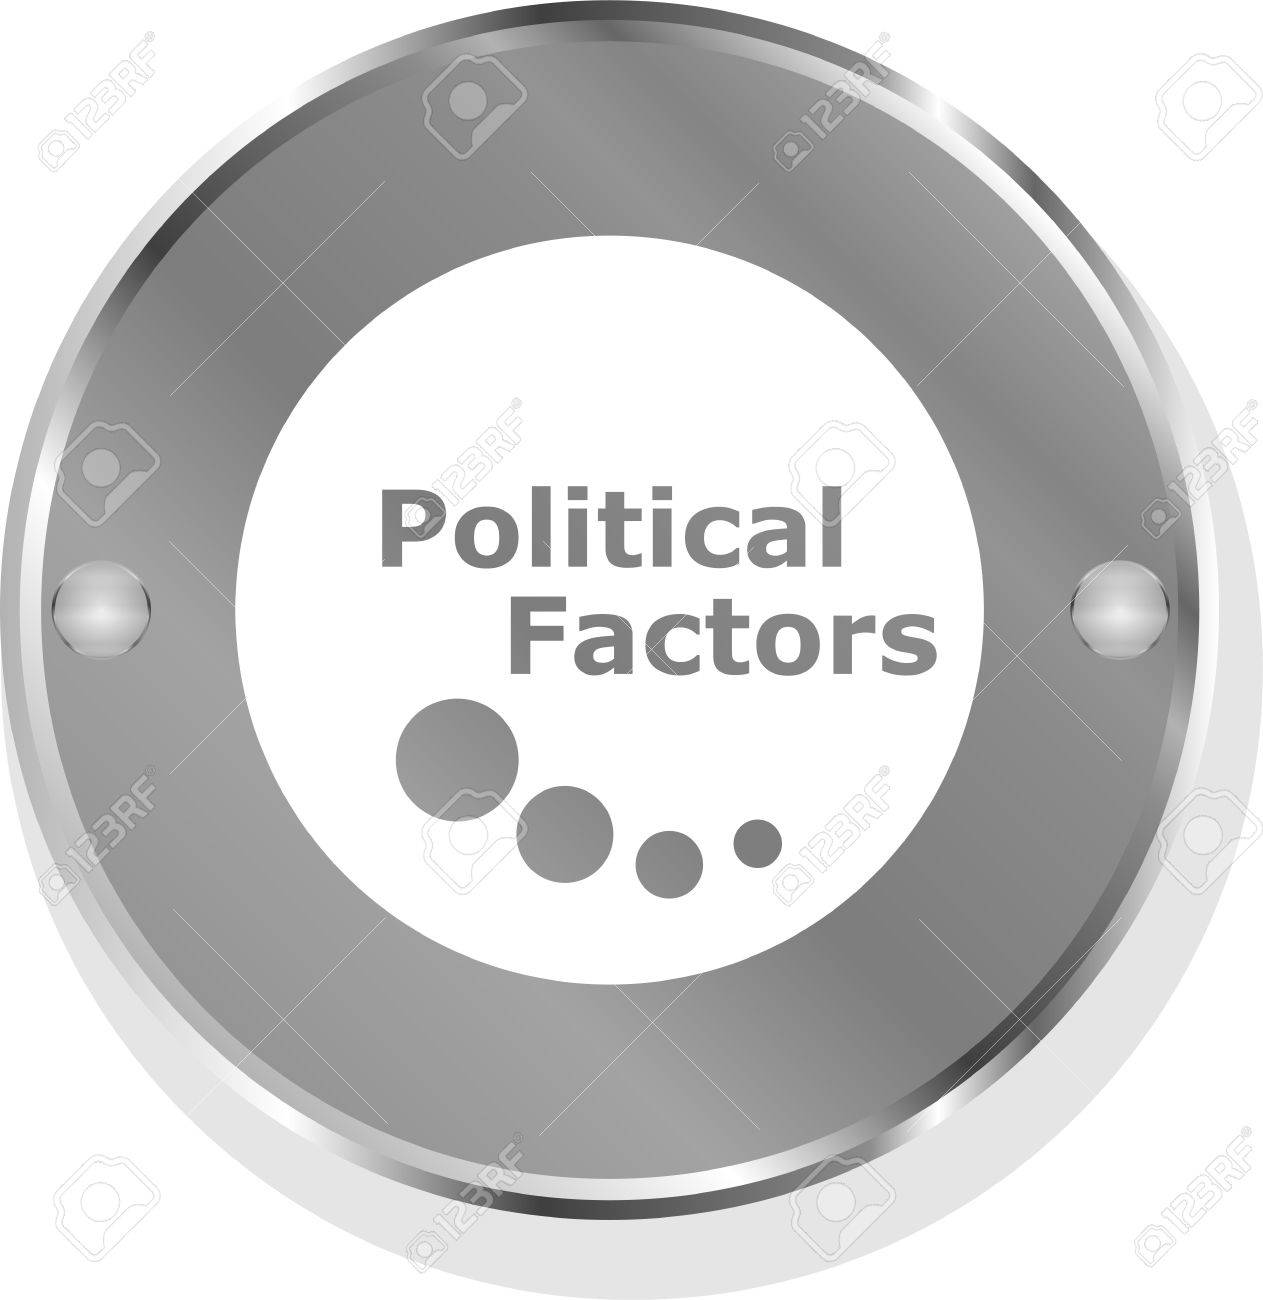 political factors metallic button Stock Photo - 19788642